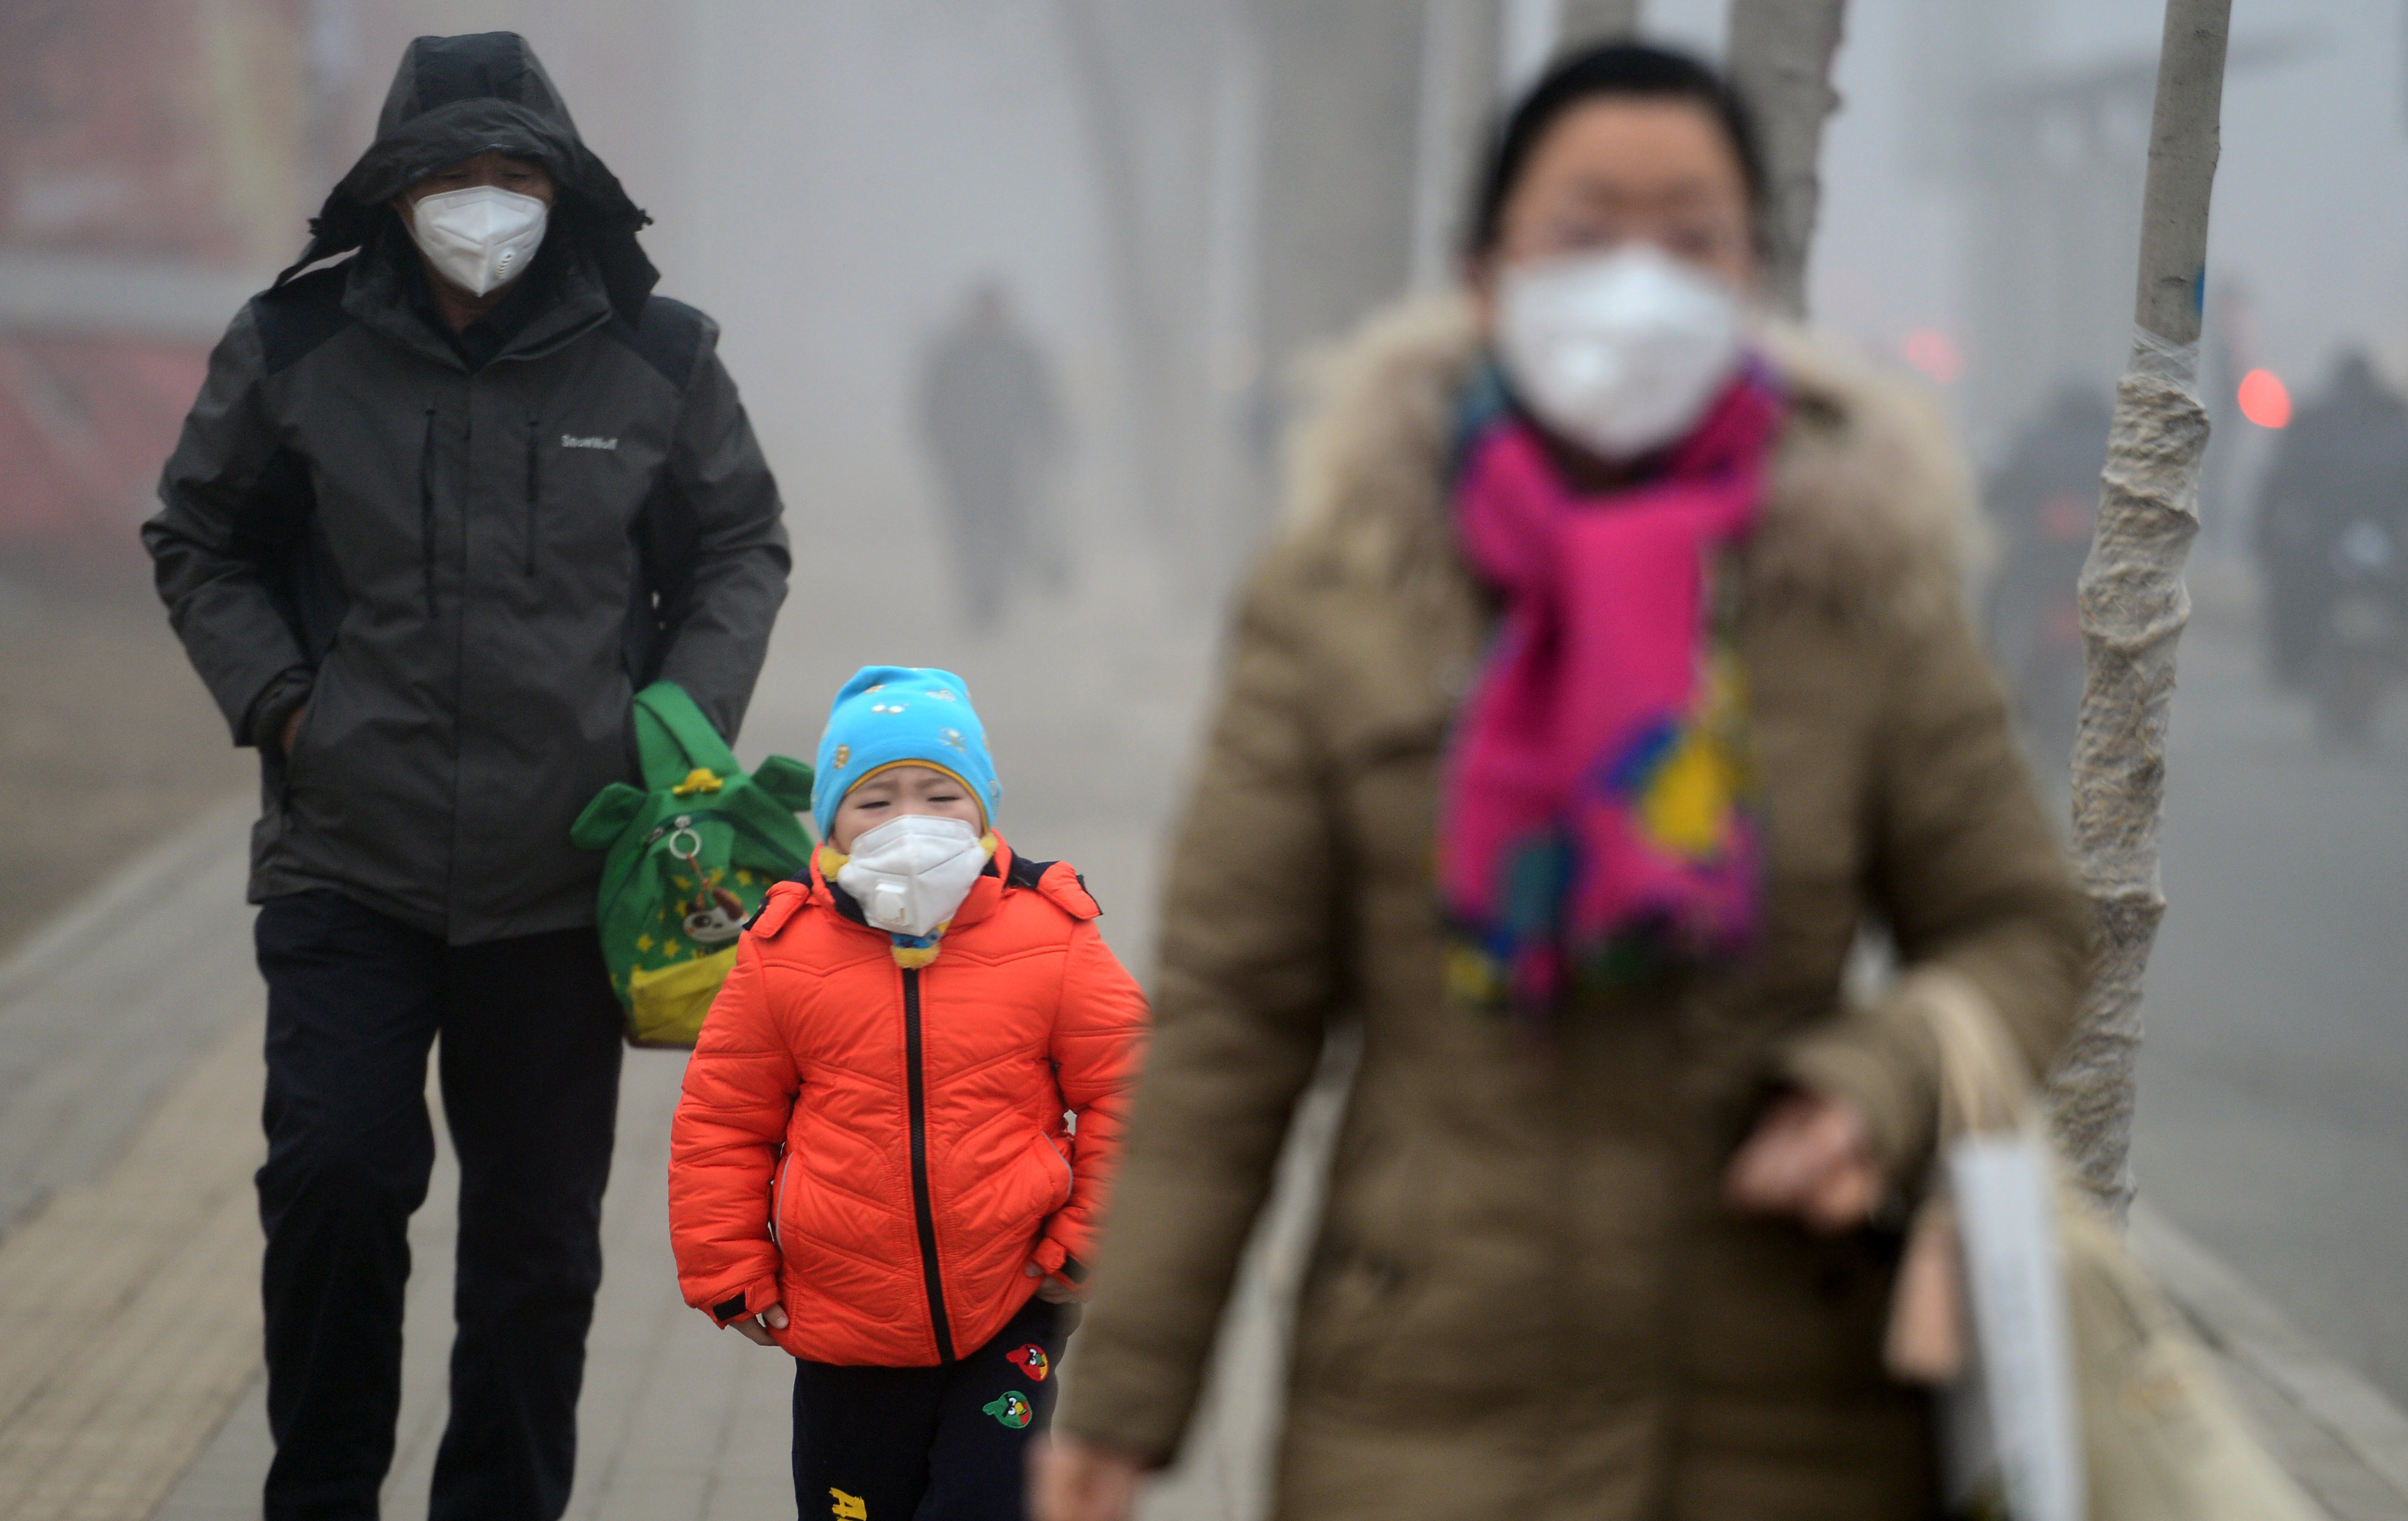 Pedestrians wearing masks walk on a road that is blanketed by heavy smog on Jan. 5, 2017, in Jinan, Shandong province, China